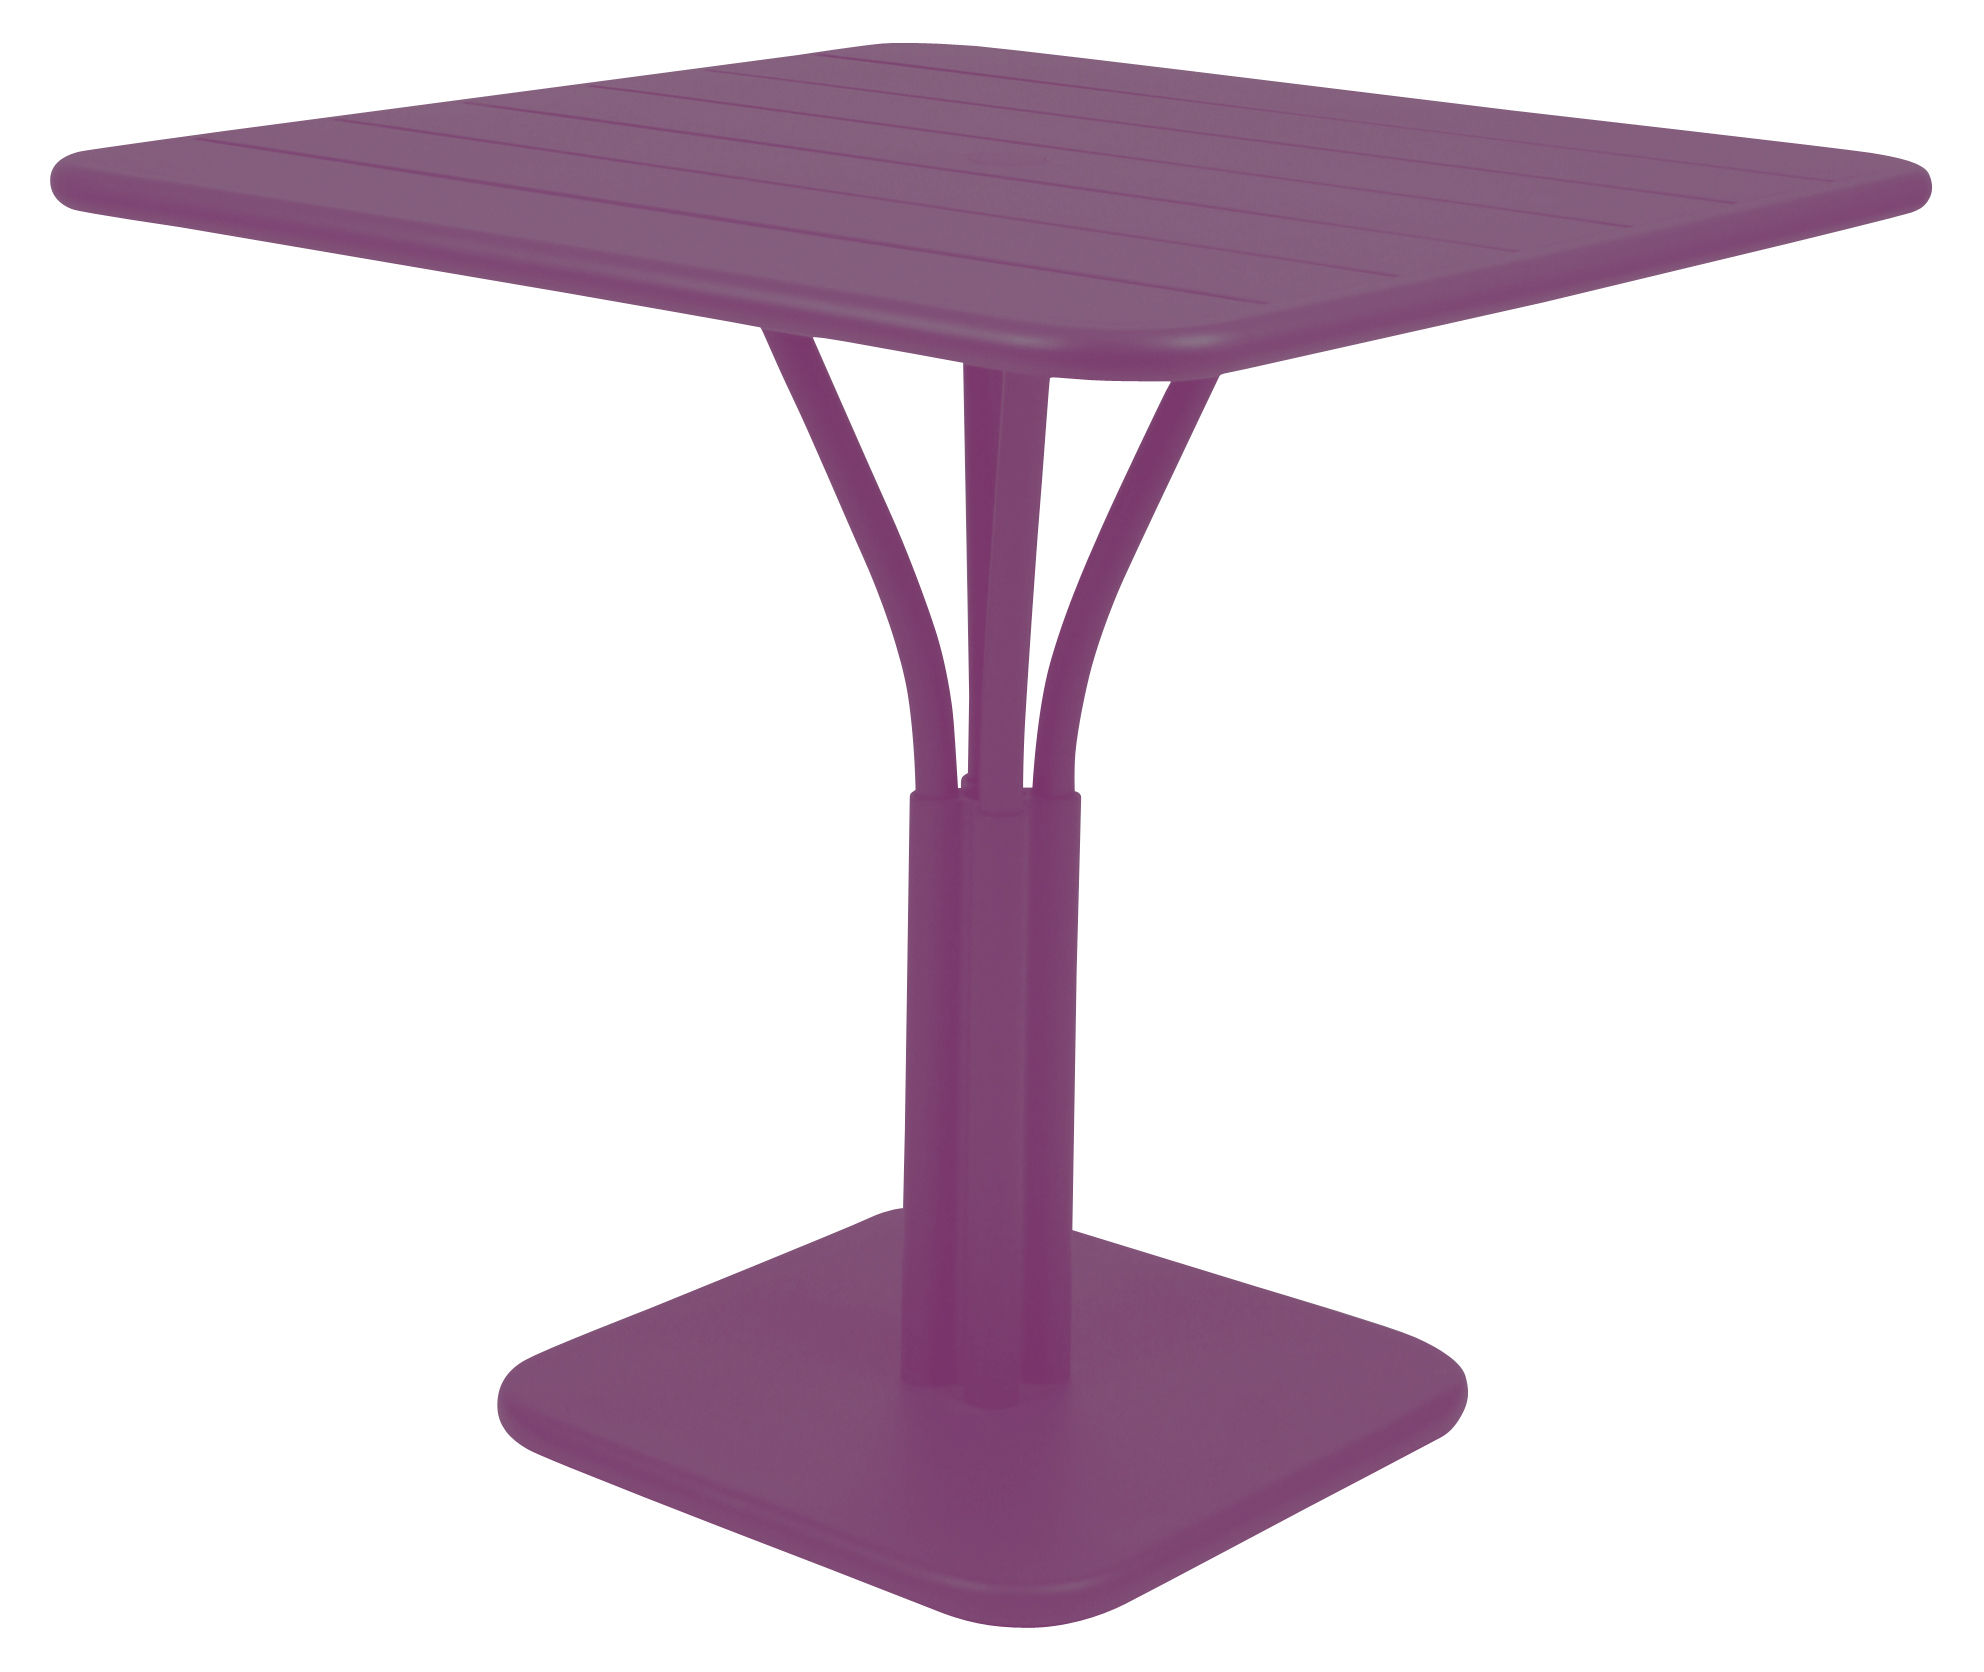 Luxembourg table 80 x 80 cm by fermob aubergine ebay for Fermob luxembourg table